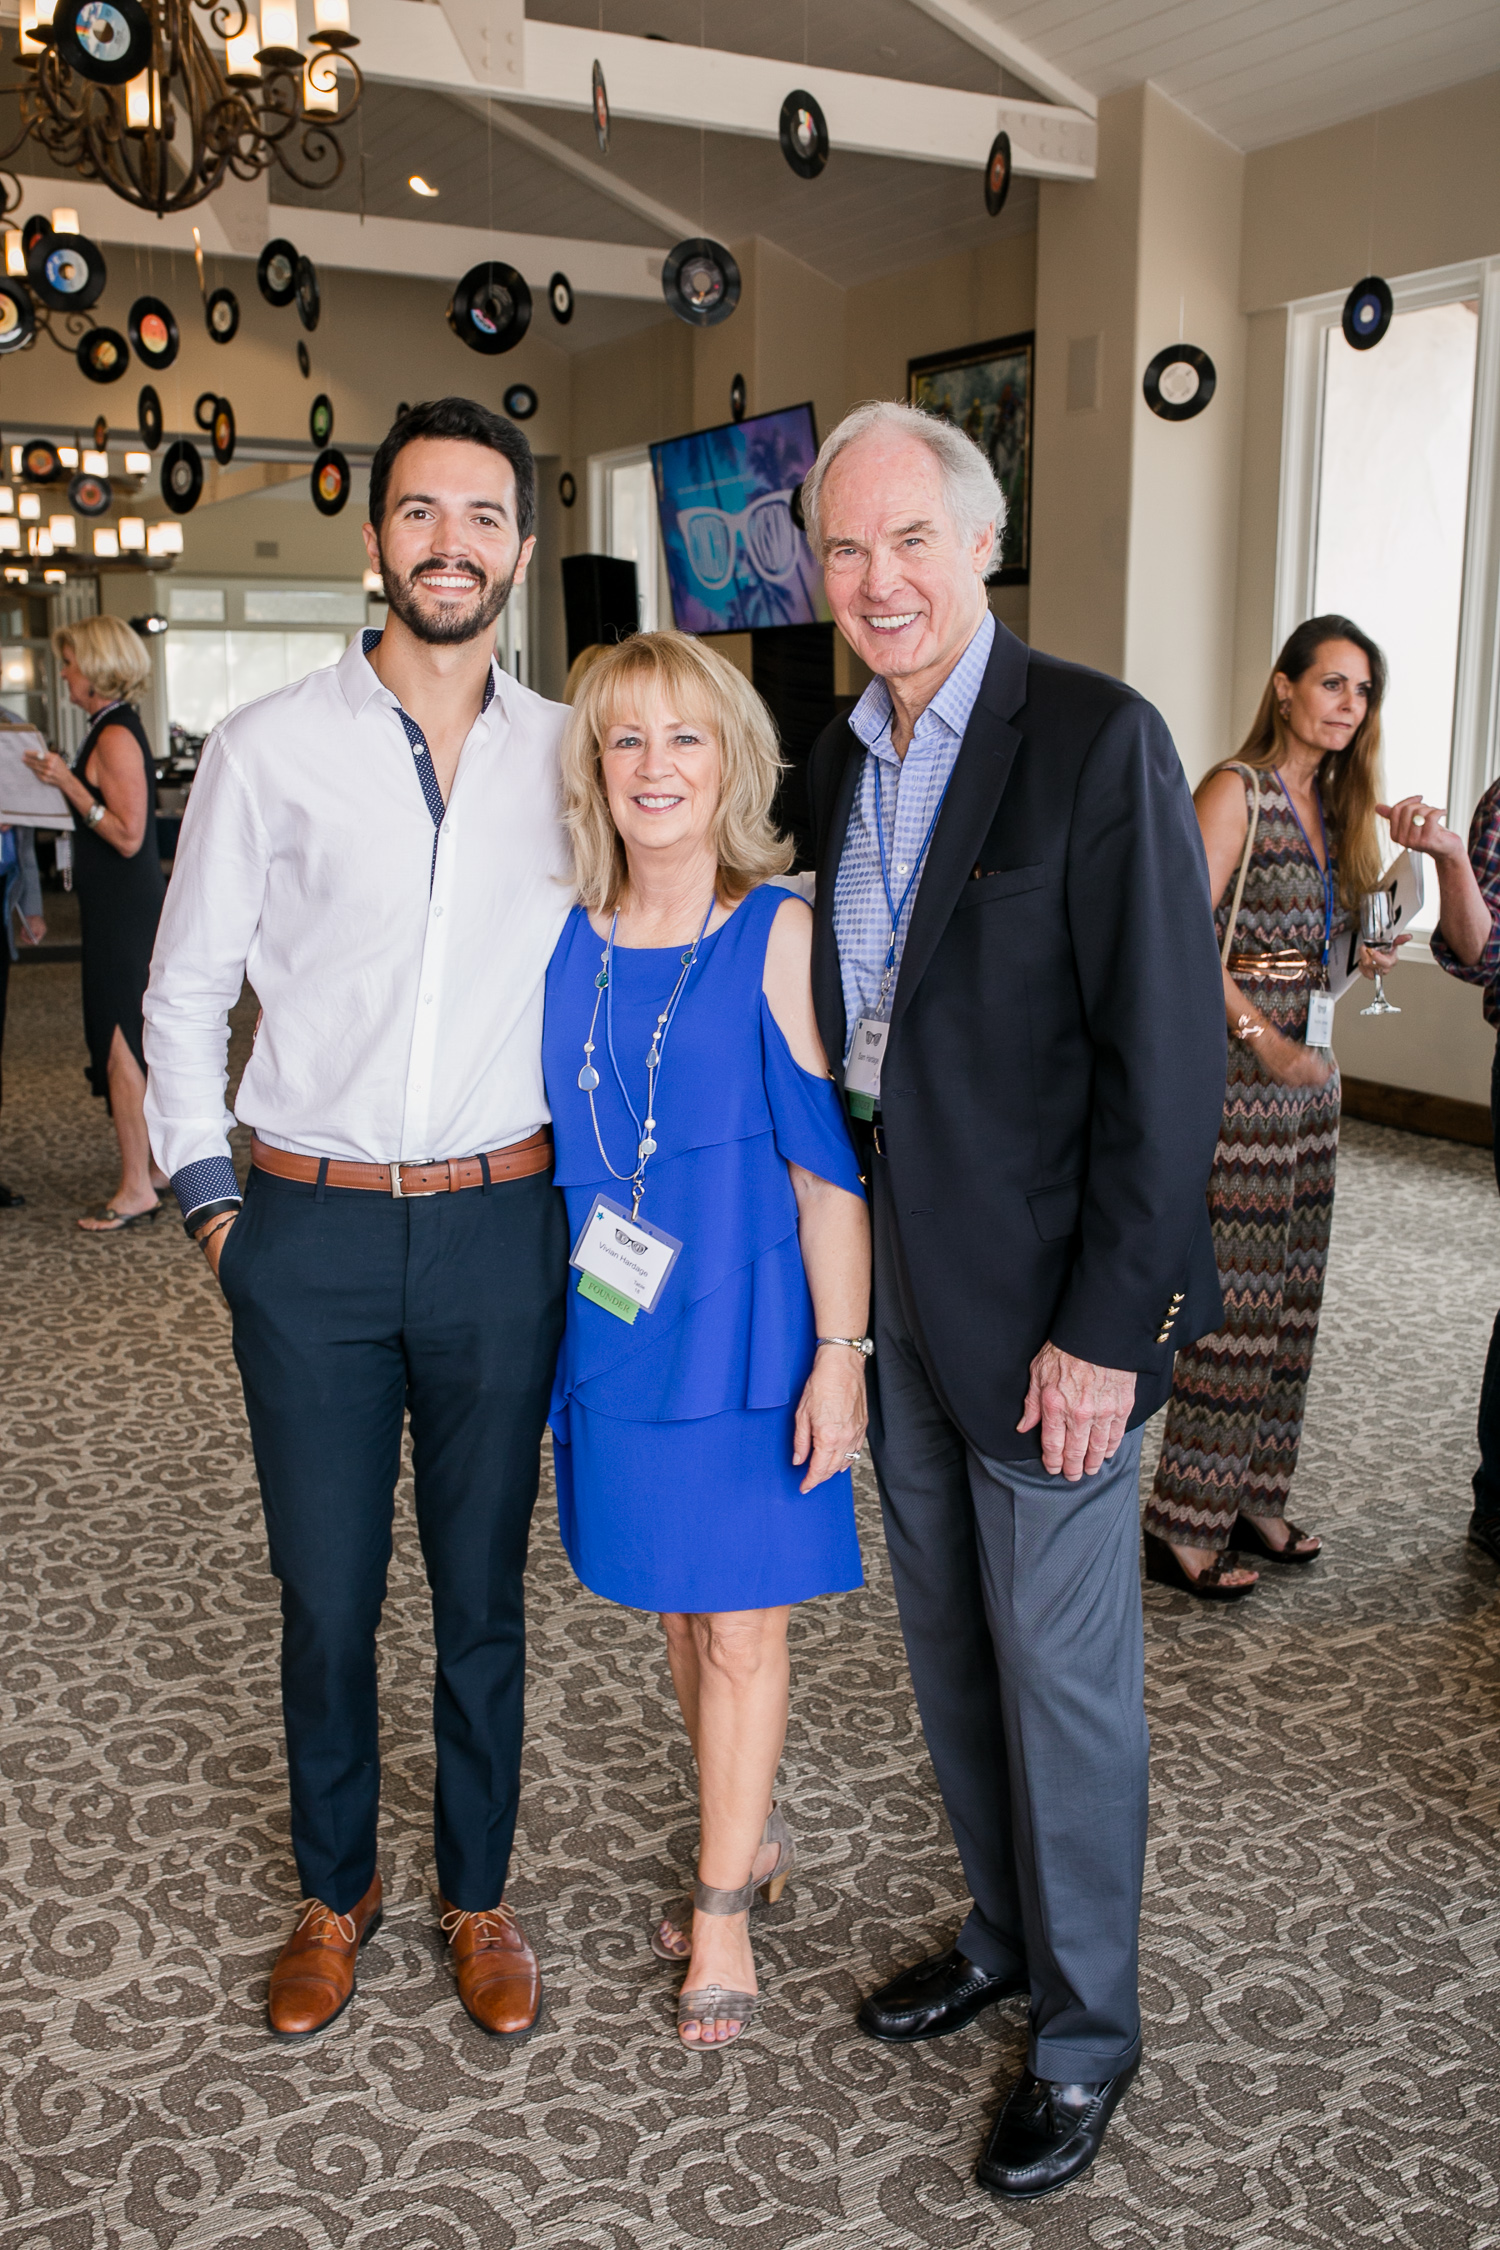 Jeremy Poincenot, VOC Vision Hero, with Vivian and Sam Hardage, Co-Founders, The Vision of Children Foundation.Photo: Cori Nichols, Fairbanks Living